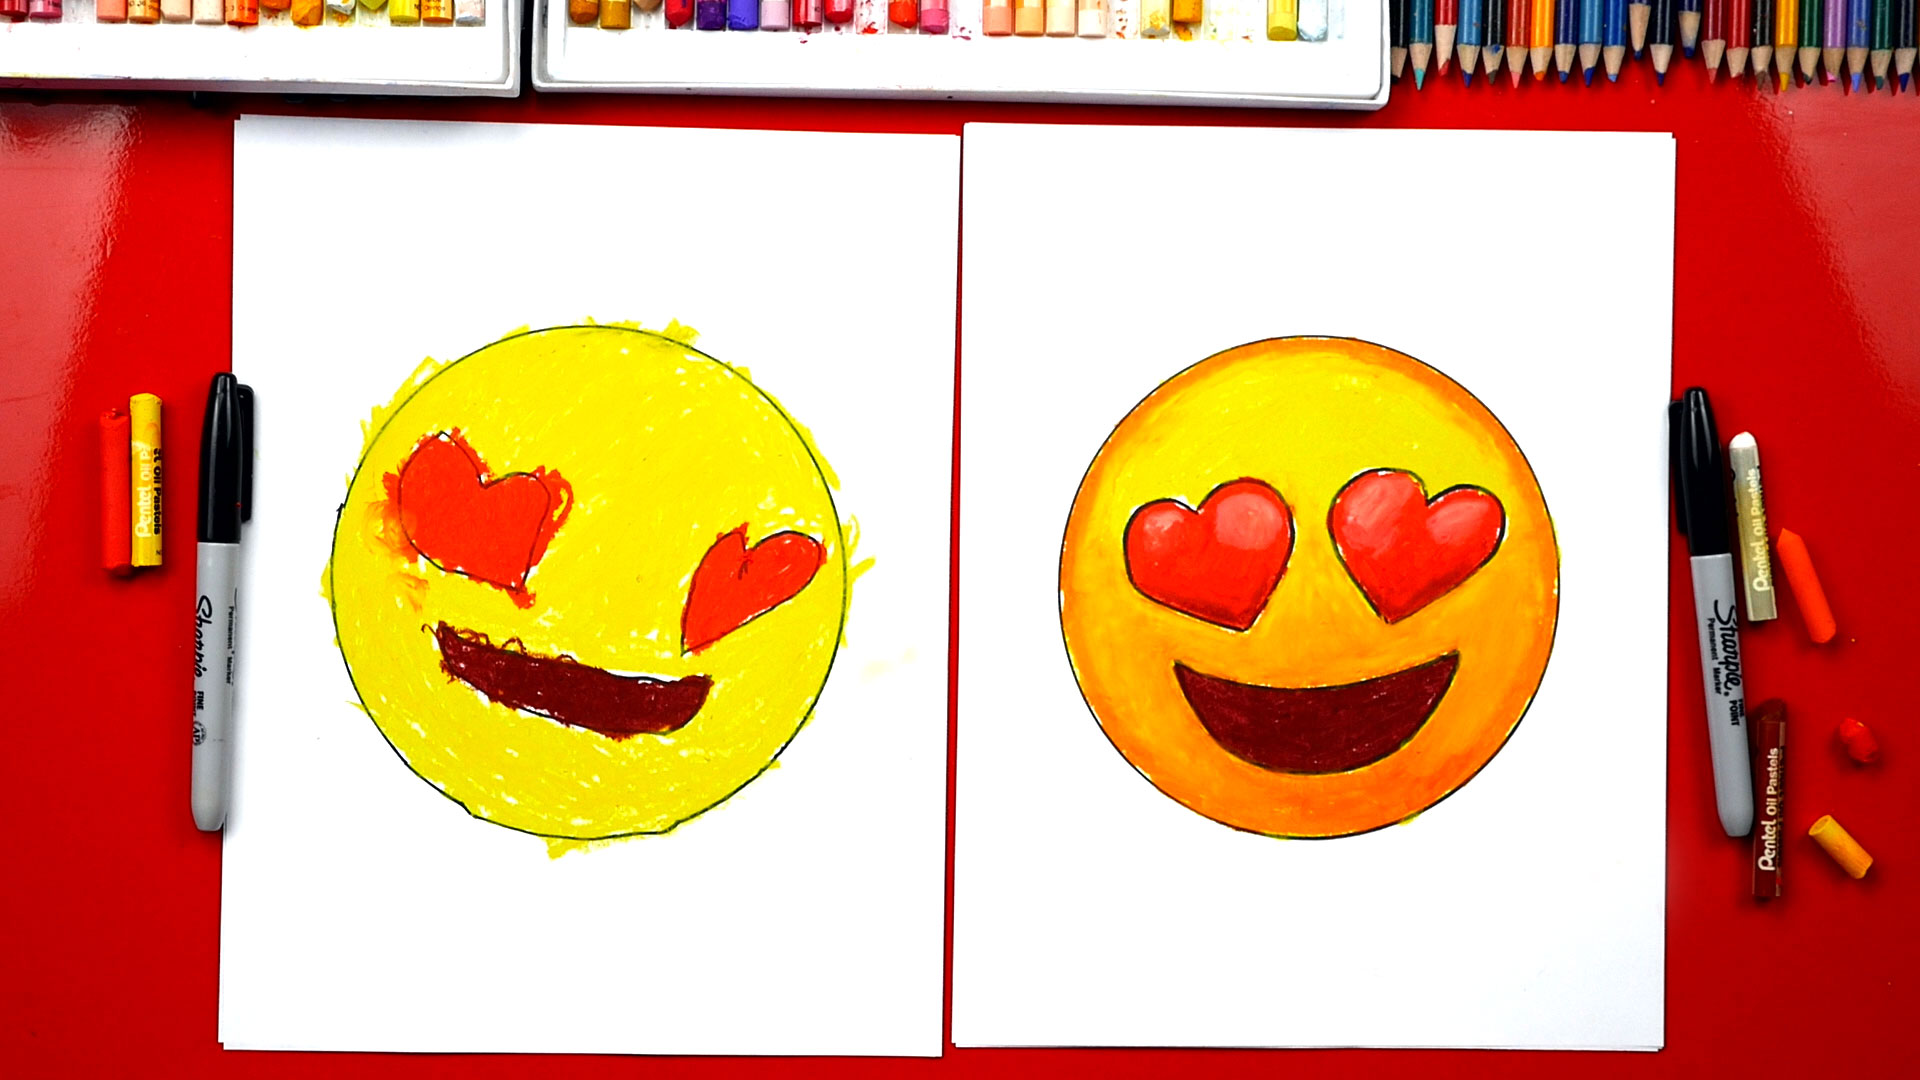 08/08/2019· how to draw a family picture very easy step by step. How To Draw Heart Eyes Emoji - Art For Kids Hub